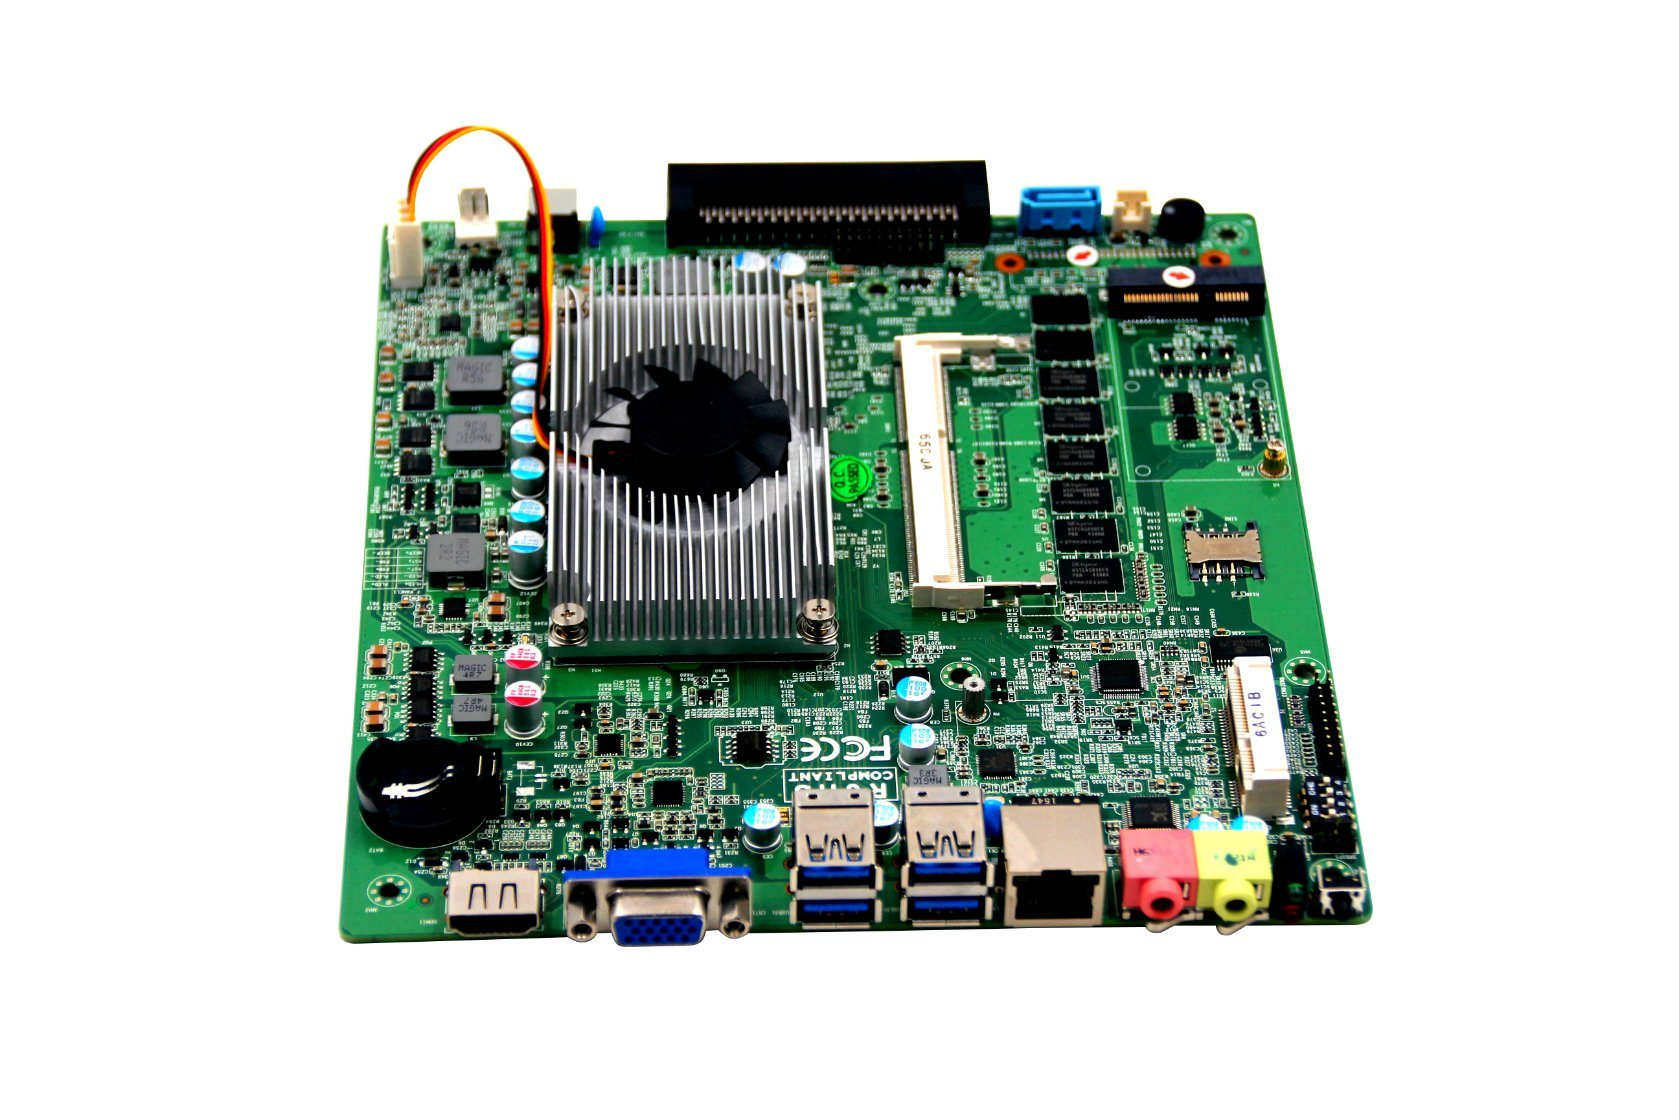 OPS Mini Itx Motherboard Haswell-U Embedded Mainboard with Mini-Pcie for 3G, WiFi Board for Car PC